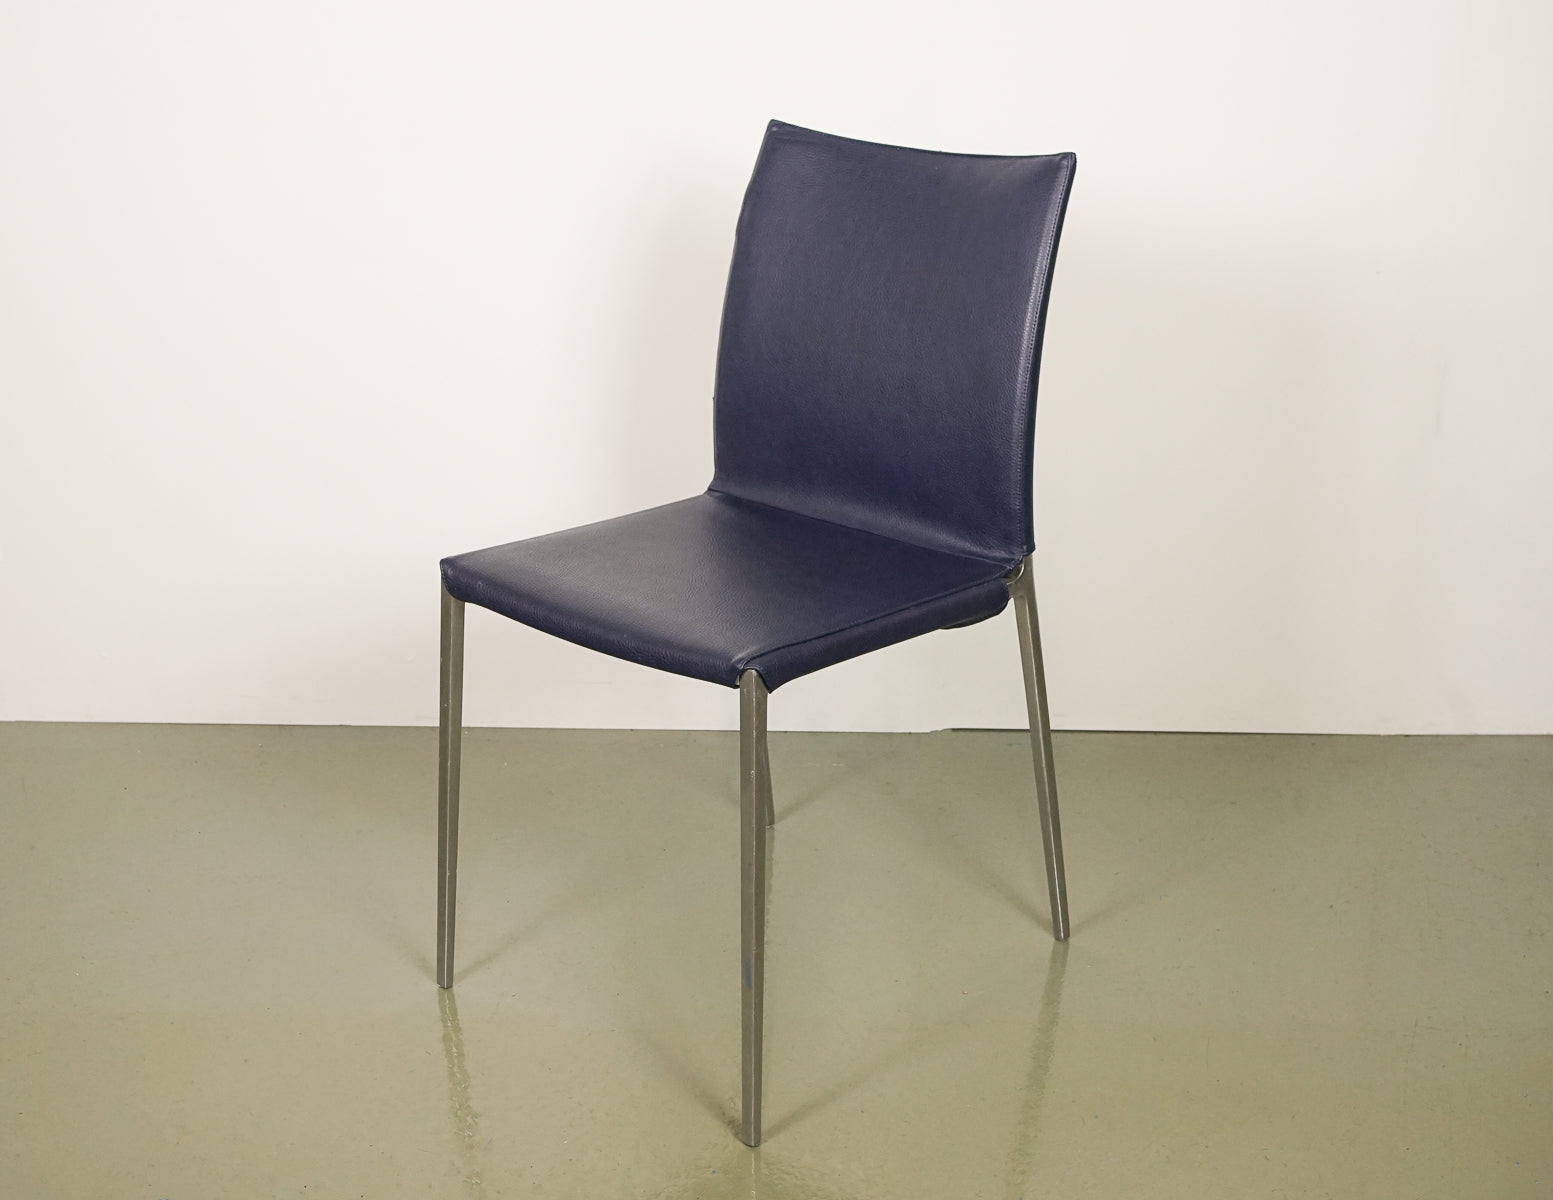 Zanotta Aluminium Chairs (4 units)